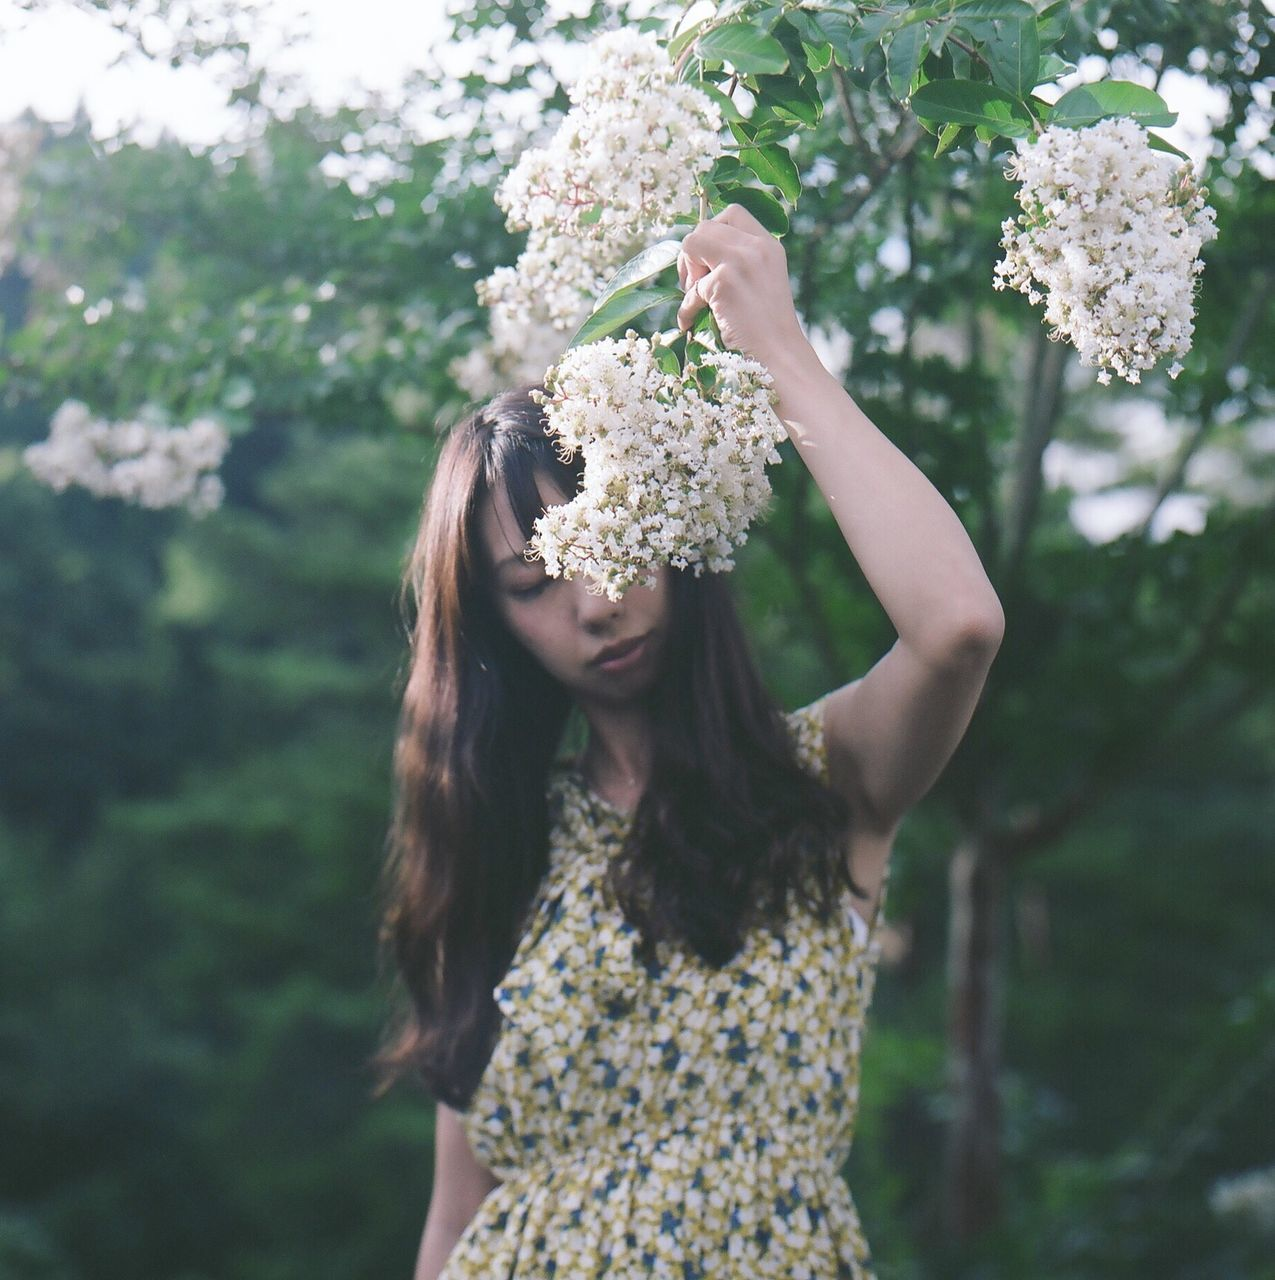 flower, one person, young adult, focus on foreground, real people, young women, day, nature, outdoors, wearing flowers, fragility, tree, standing, freshness, beauty in nature, bride, close-up, people